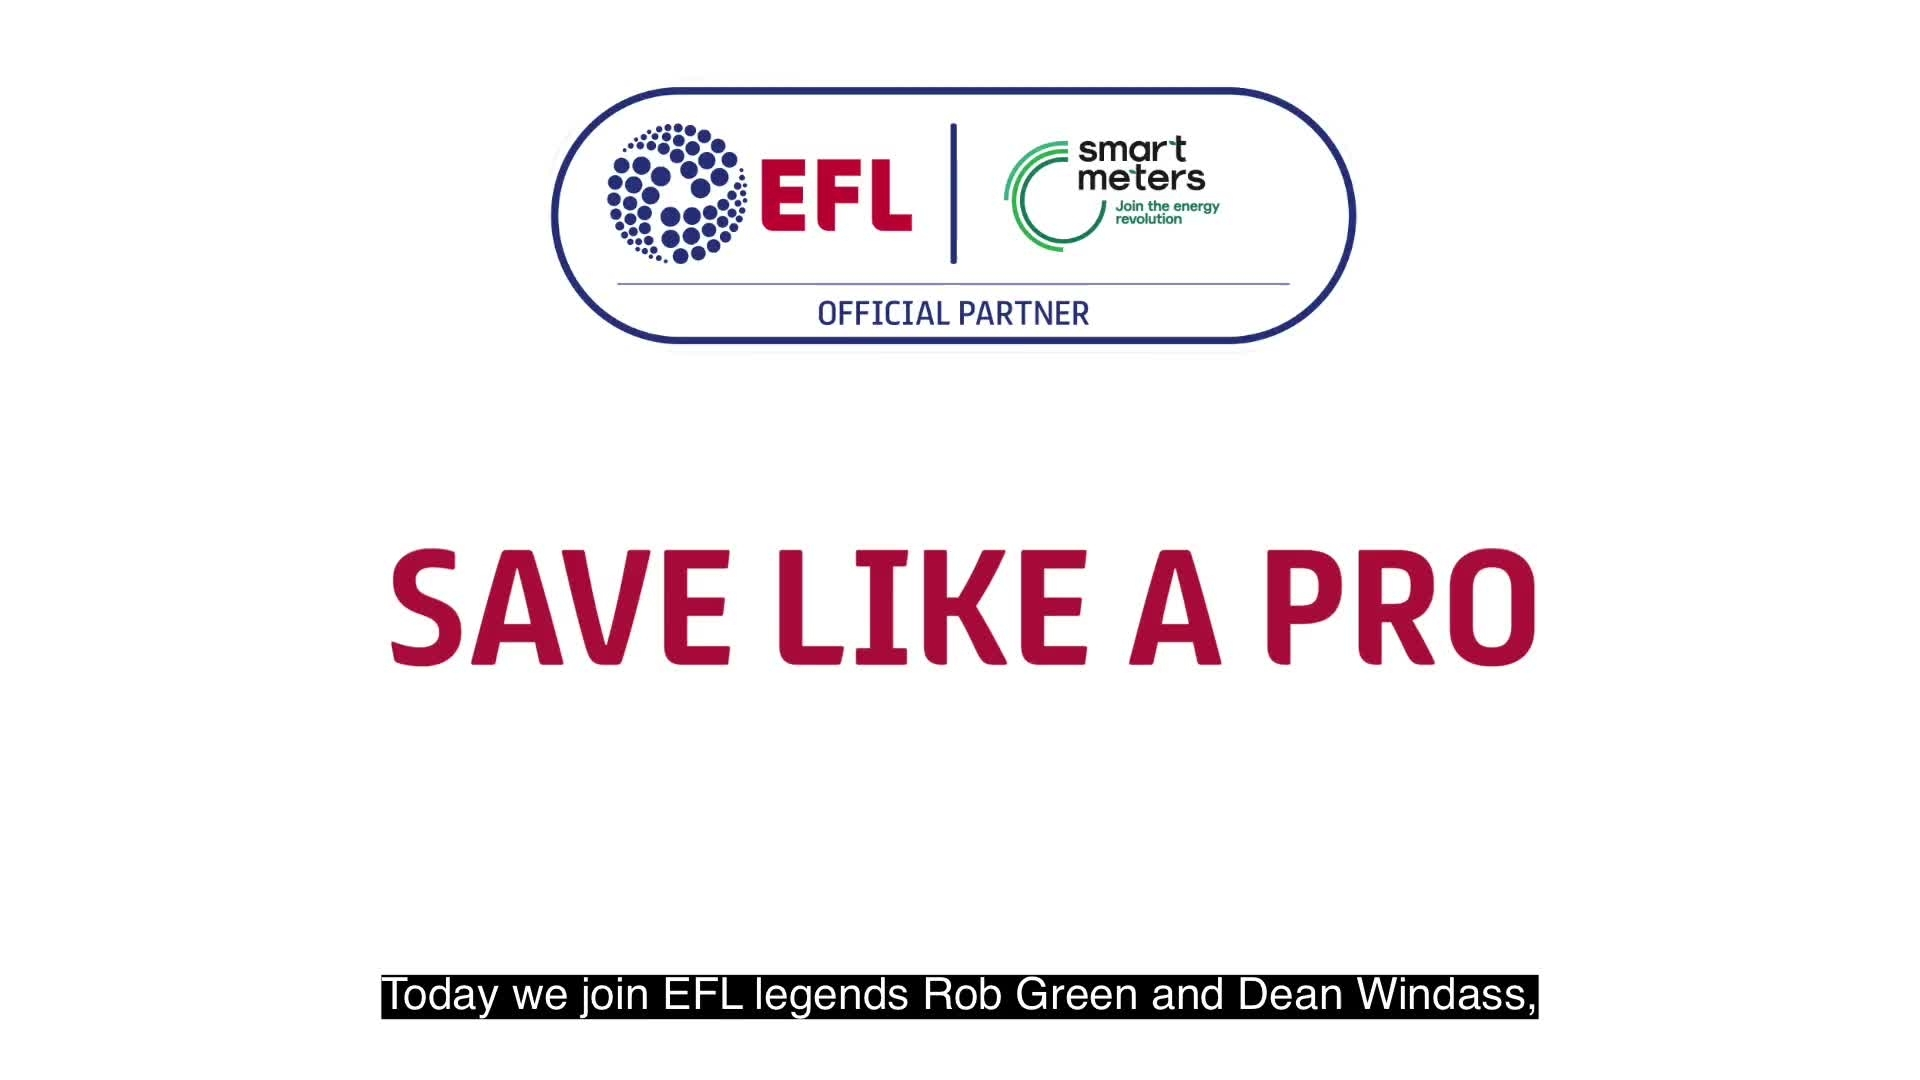 'Save like a pro' with the EFL and Smart Energy GB (May 2021)